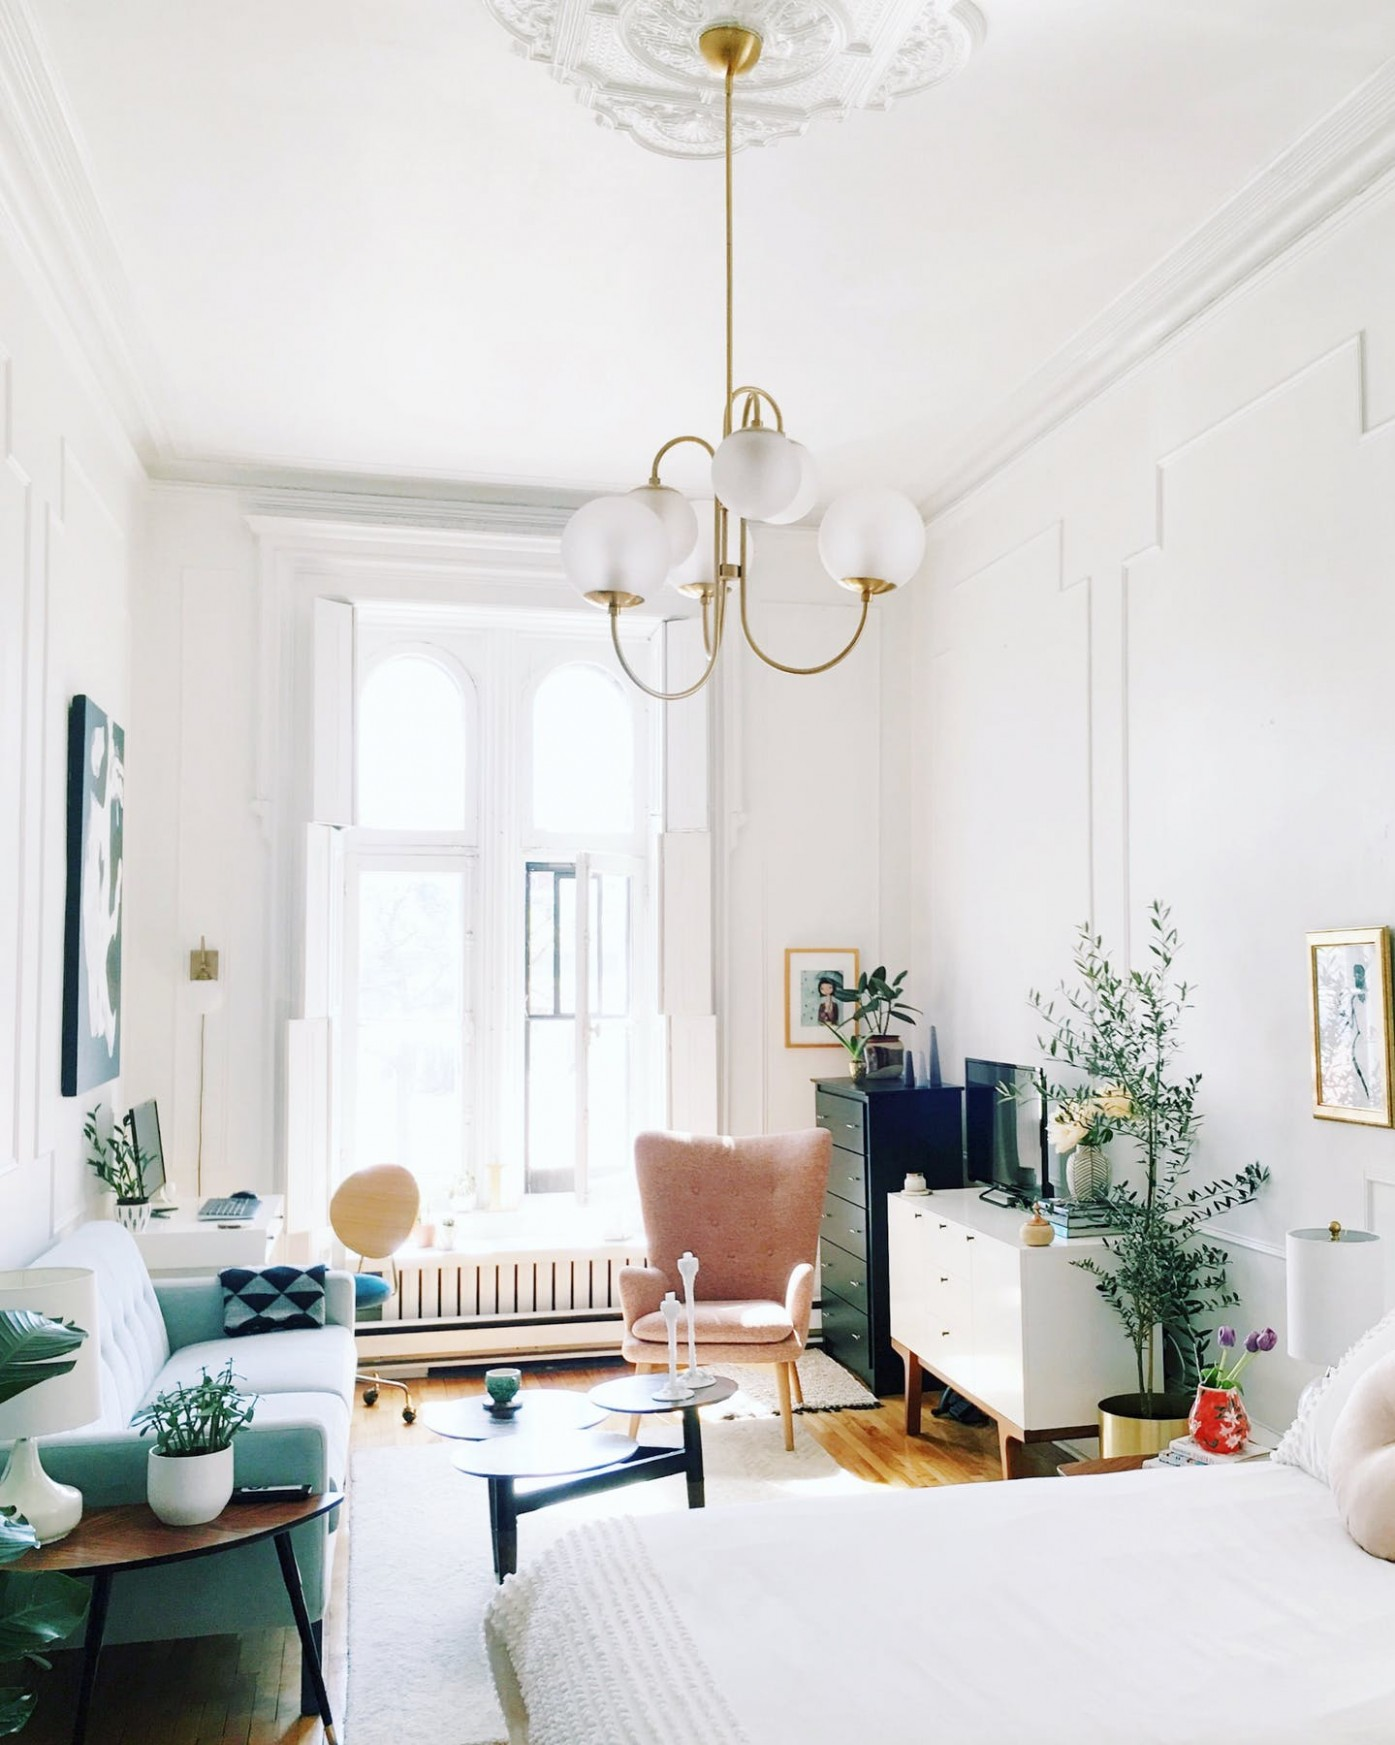 8 Small Apartment Decor Tips To Make The Most of Your Space  - Apartment Design Help